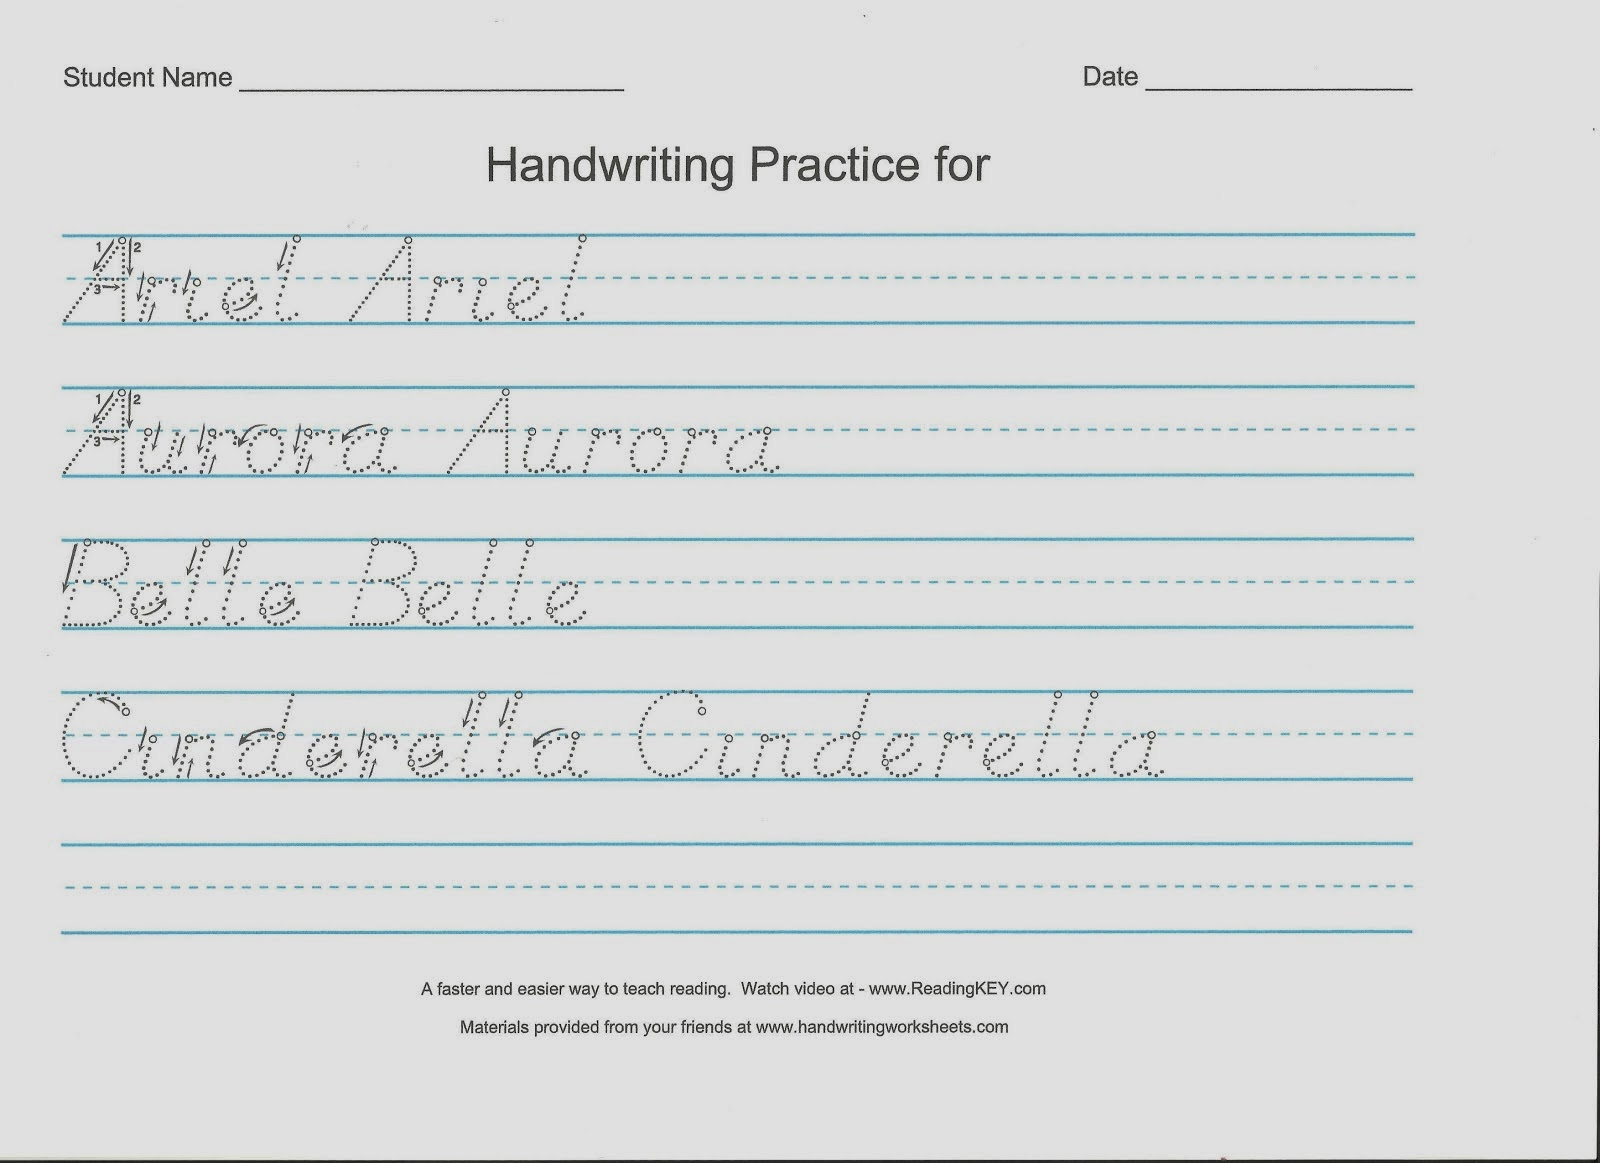 Handwriting Practice Pdf Images